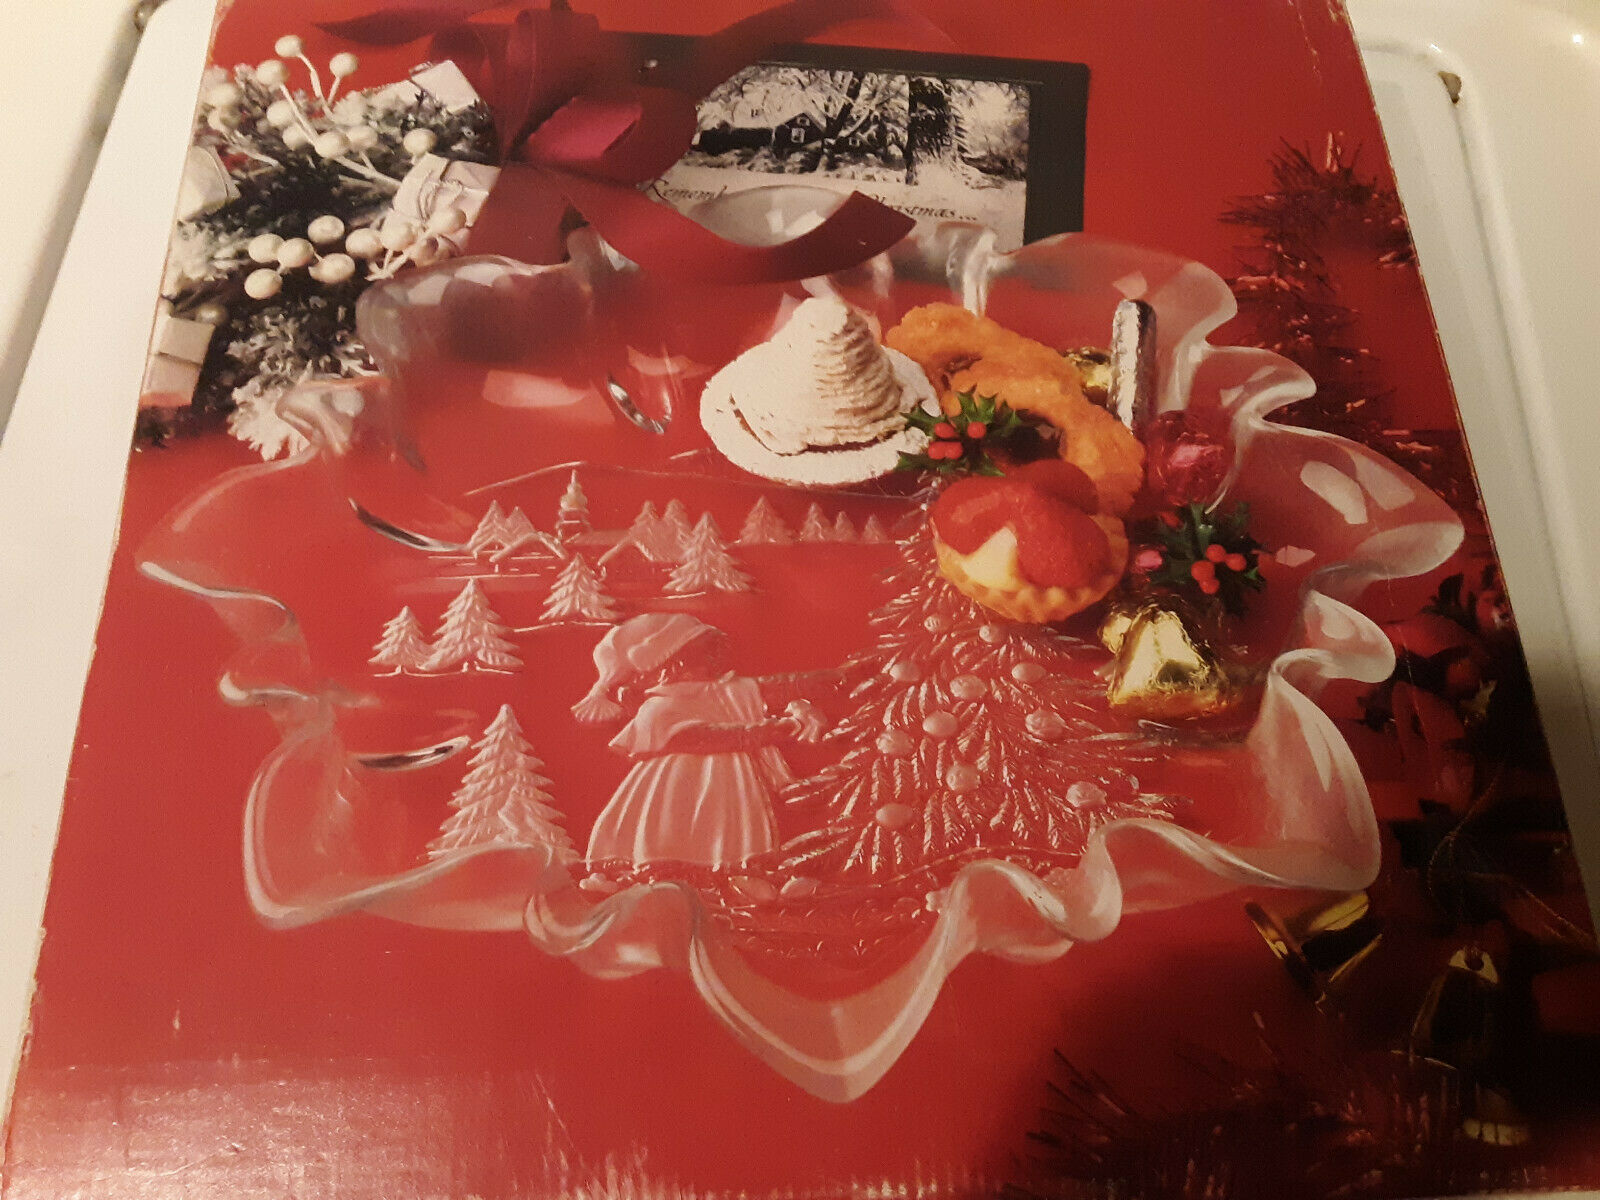 Highly Collectible Mikasa Germany Frosted Crystal Bonbon Serving Dish  Candy Tray Shaped as Santa/'s Boot in Original Box FREE SHIPPING C25